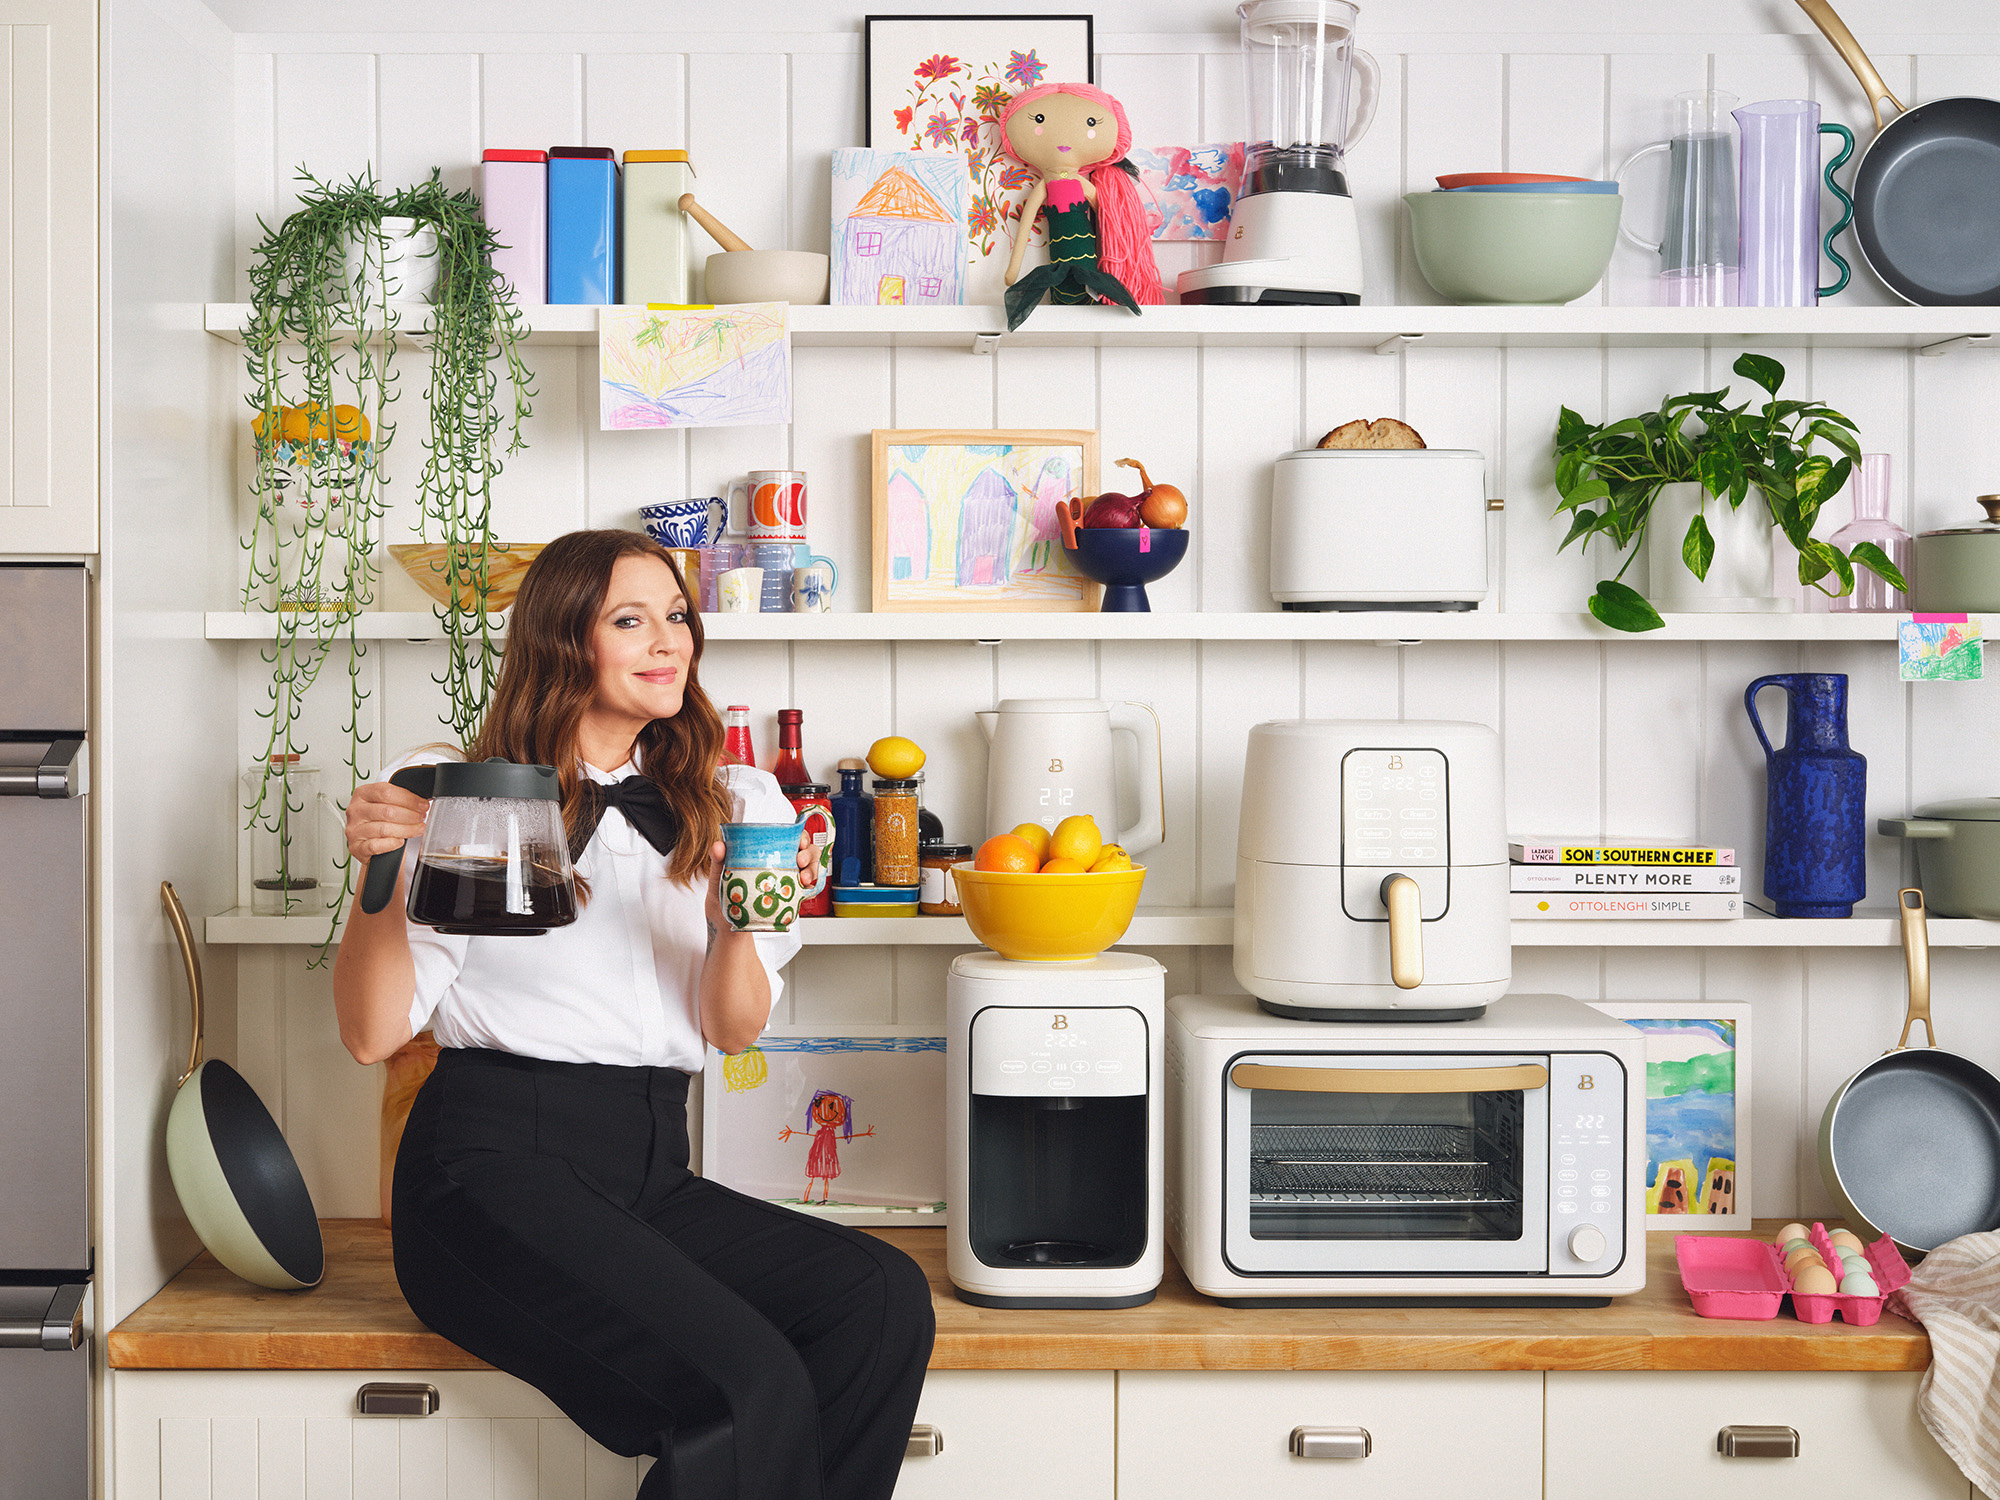 Drew Barrymore's New Kitchen Collection